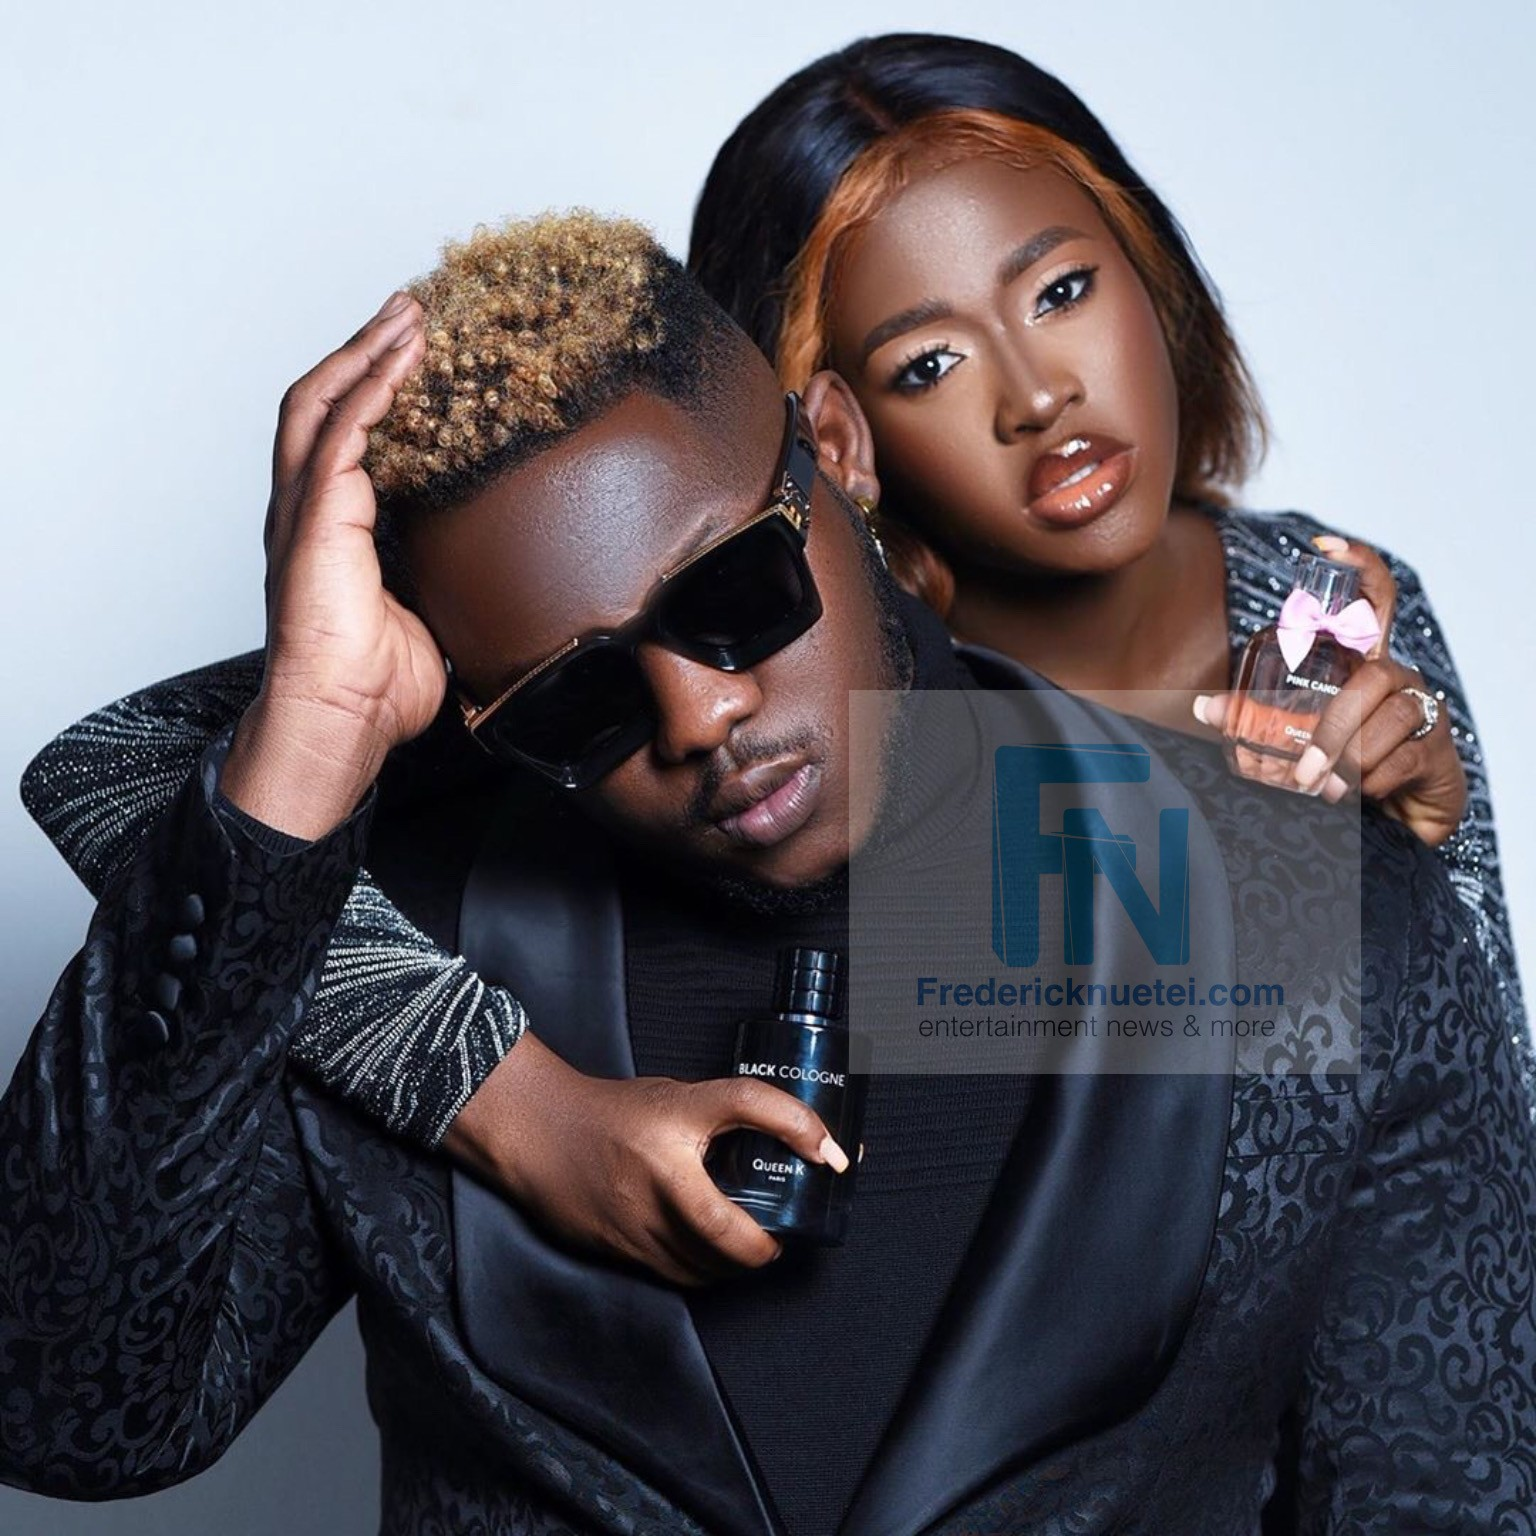 Medikal Confirms Fella Makafui's Pregnancy In A New Music Video 'Odo' Featuring King Promise